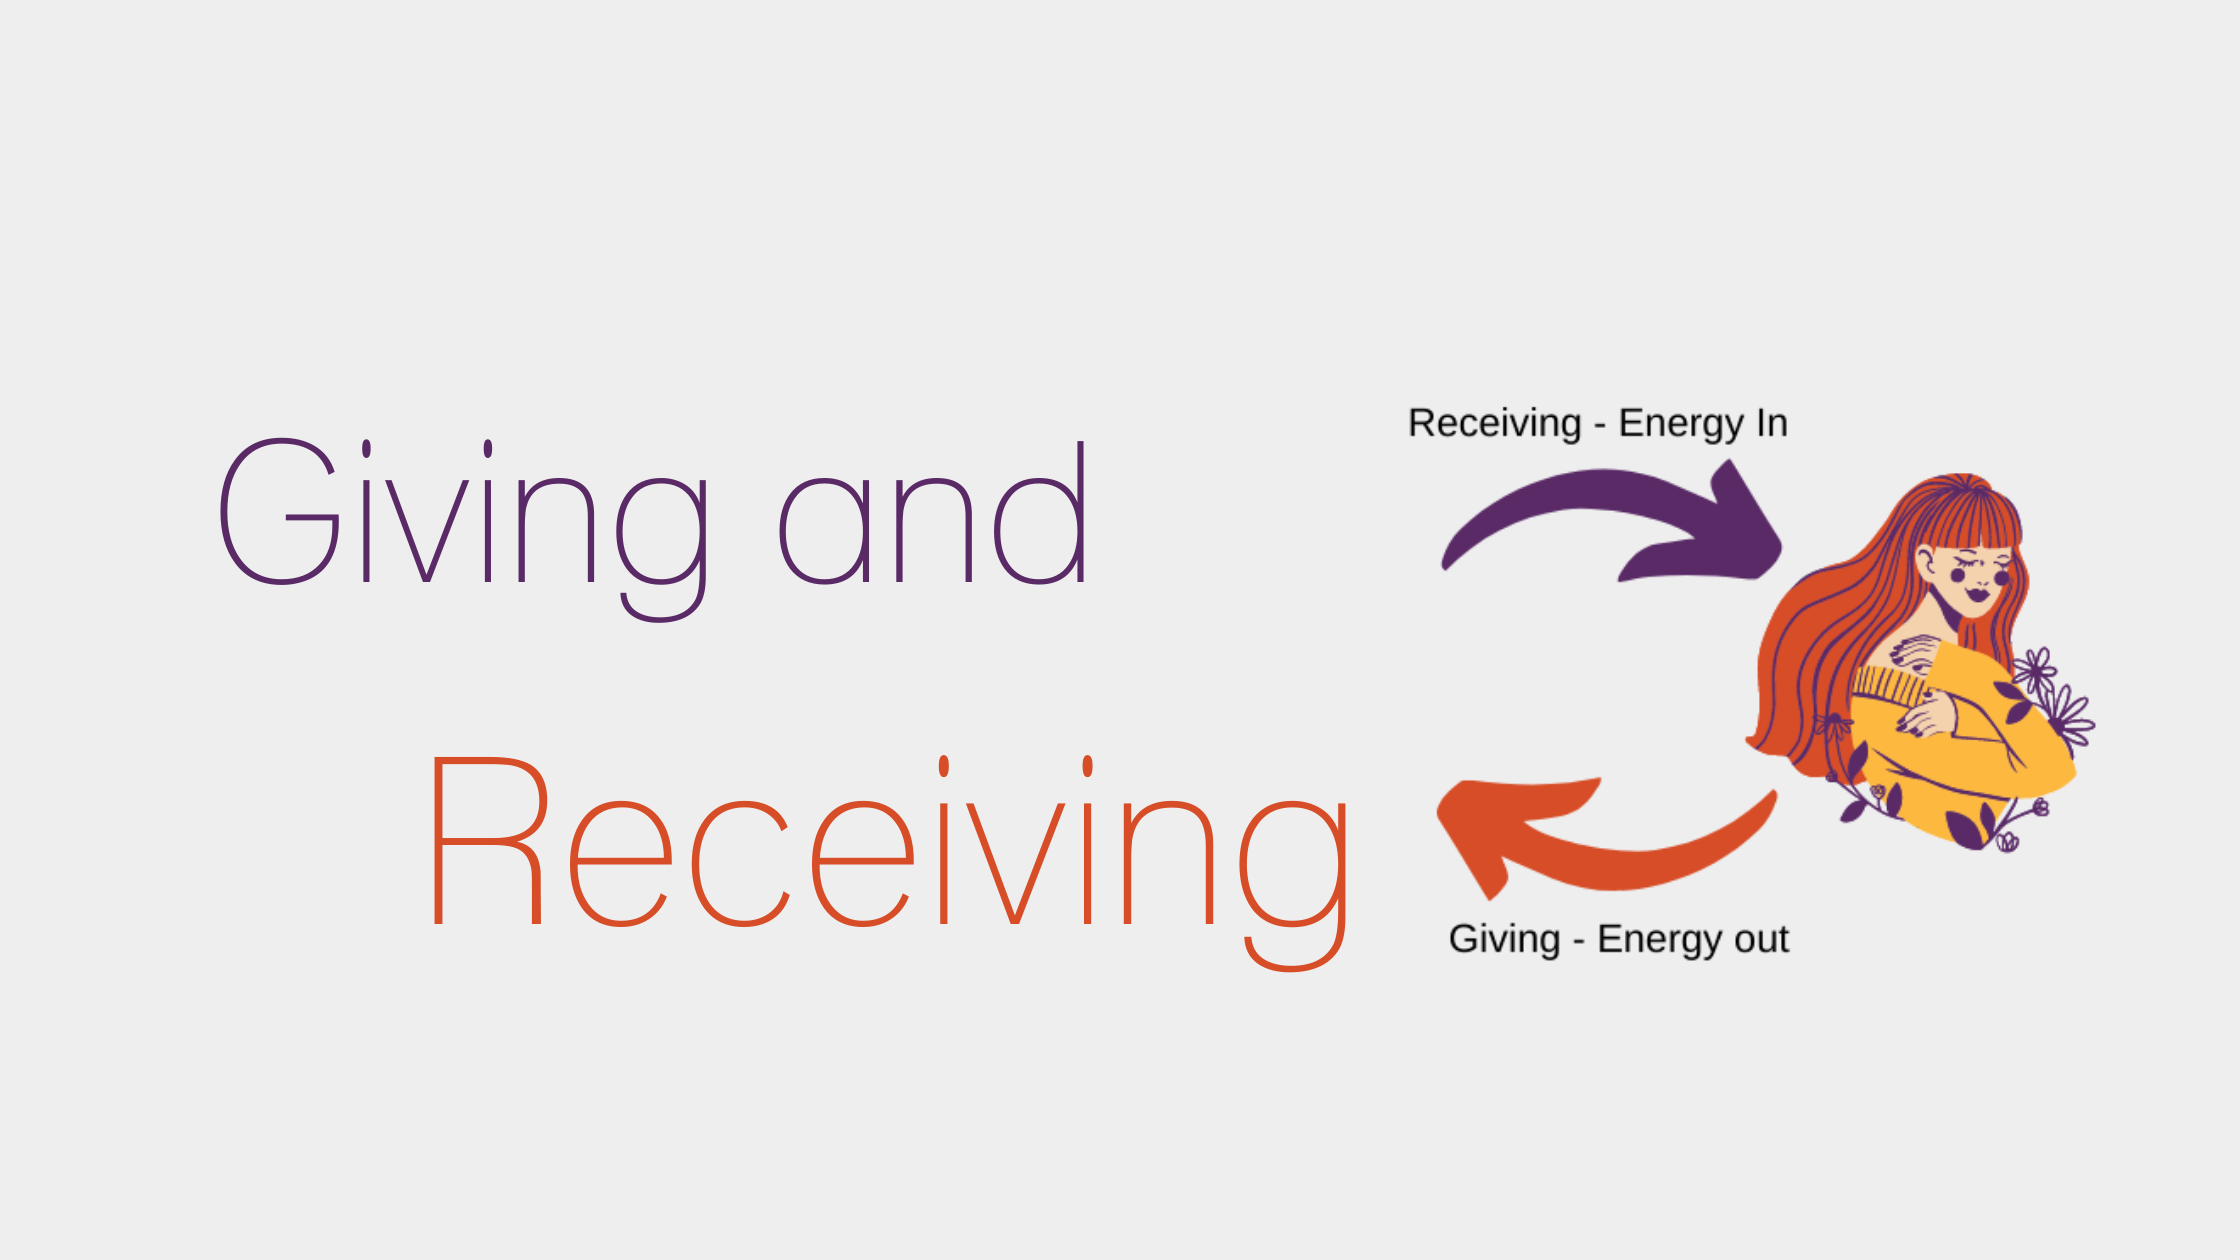 Balancing act of giving and receiving